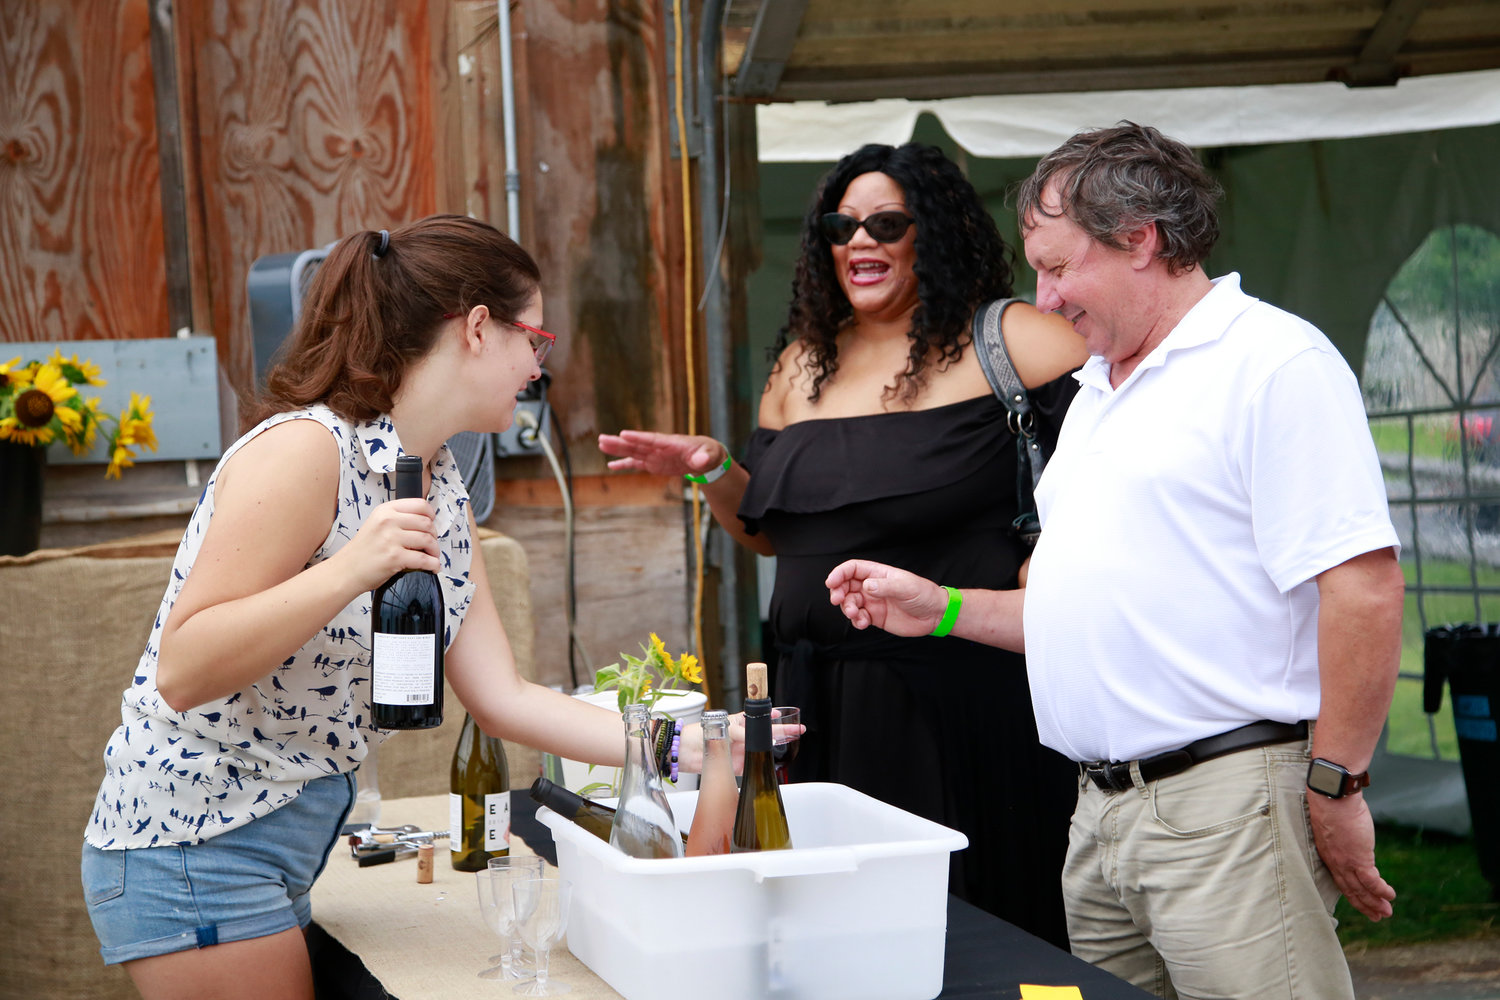 Lizzie Papritz served up some red wine to Angela Philip and Hal Schwartz during Crossroads Farm's L.I. Food & Drink Sampling Event on Aug. 23.